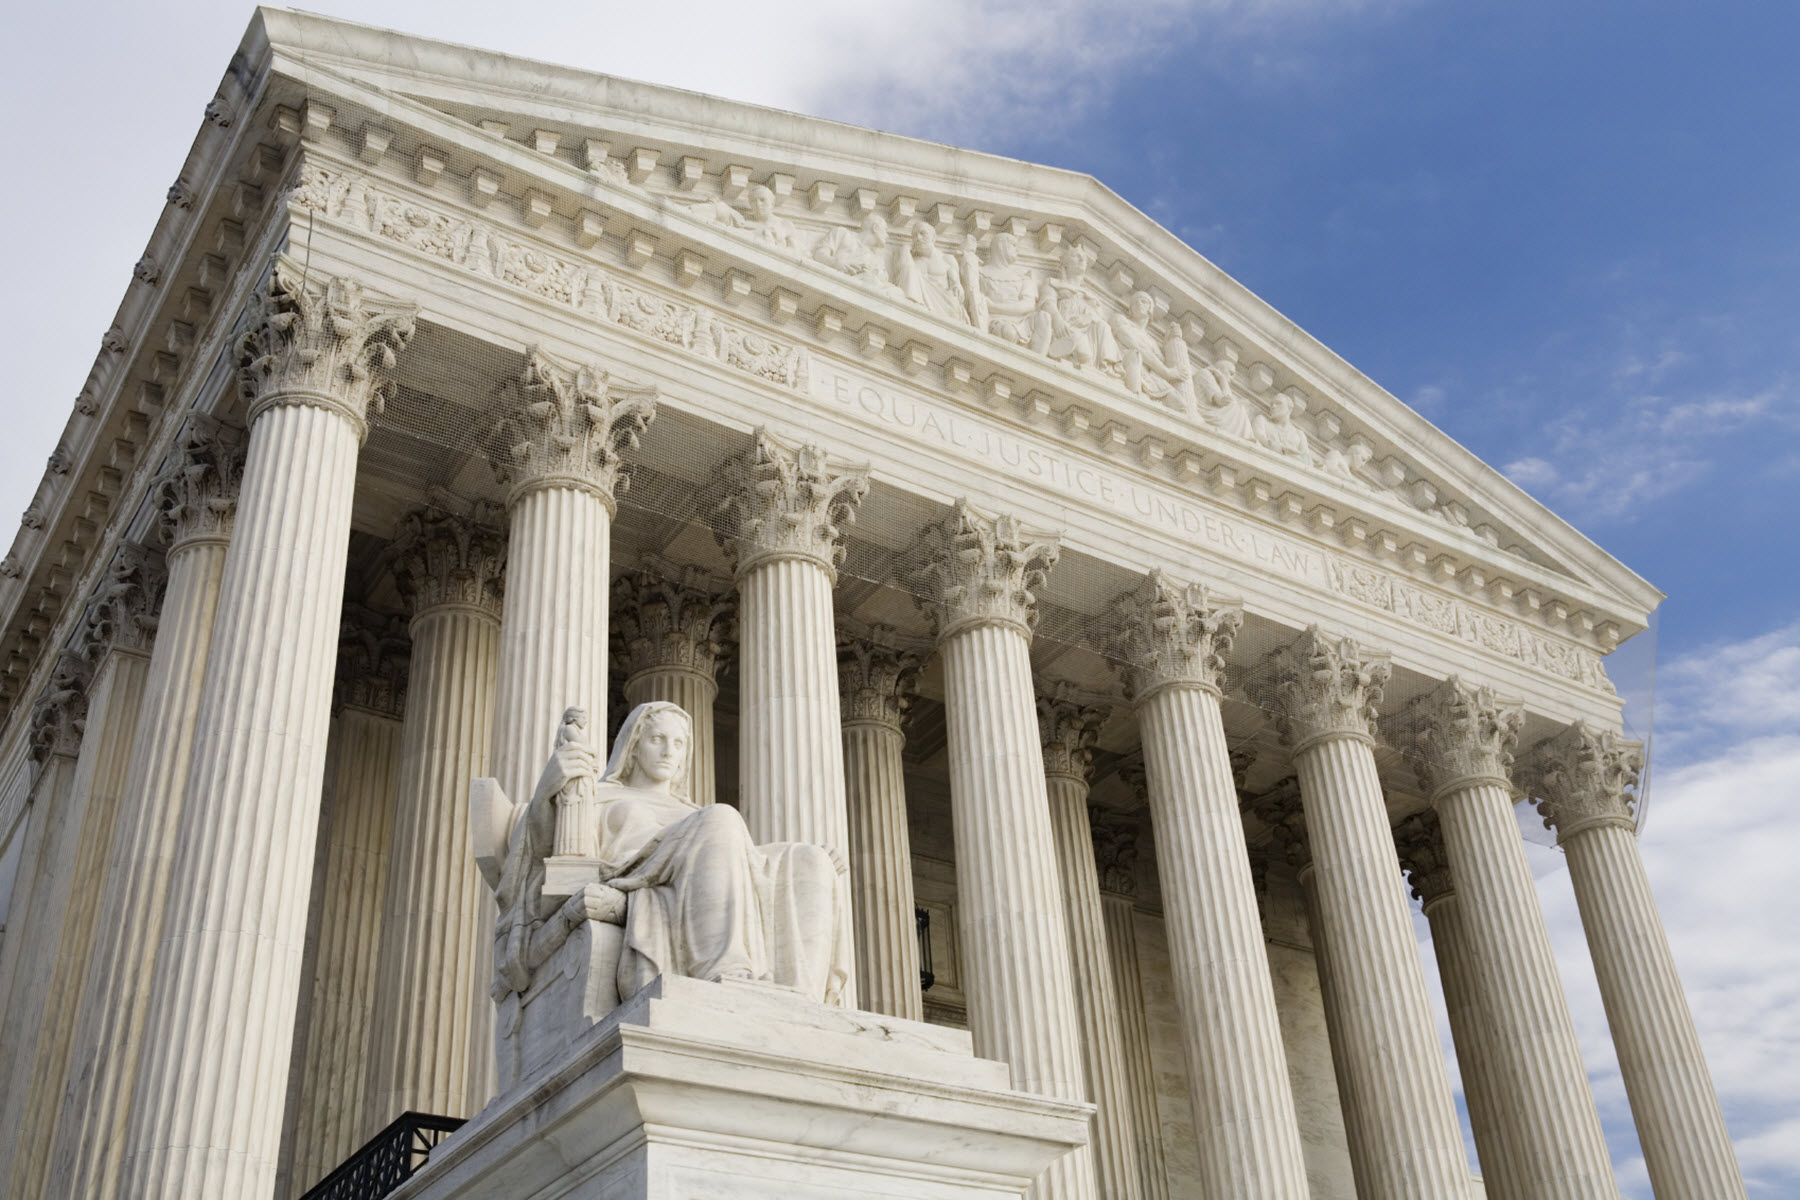 Up Next for Obamacare: 1 of 4 Court Rulings Likely